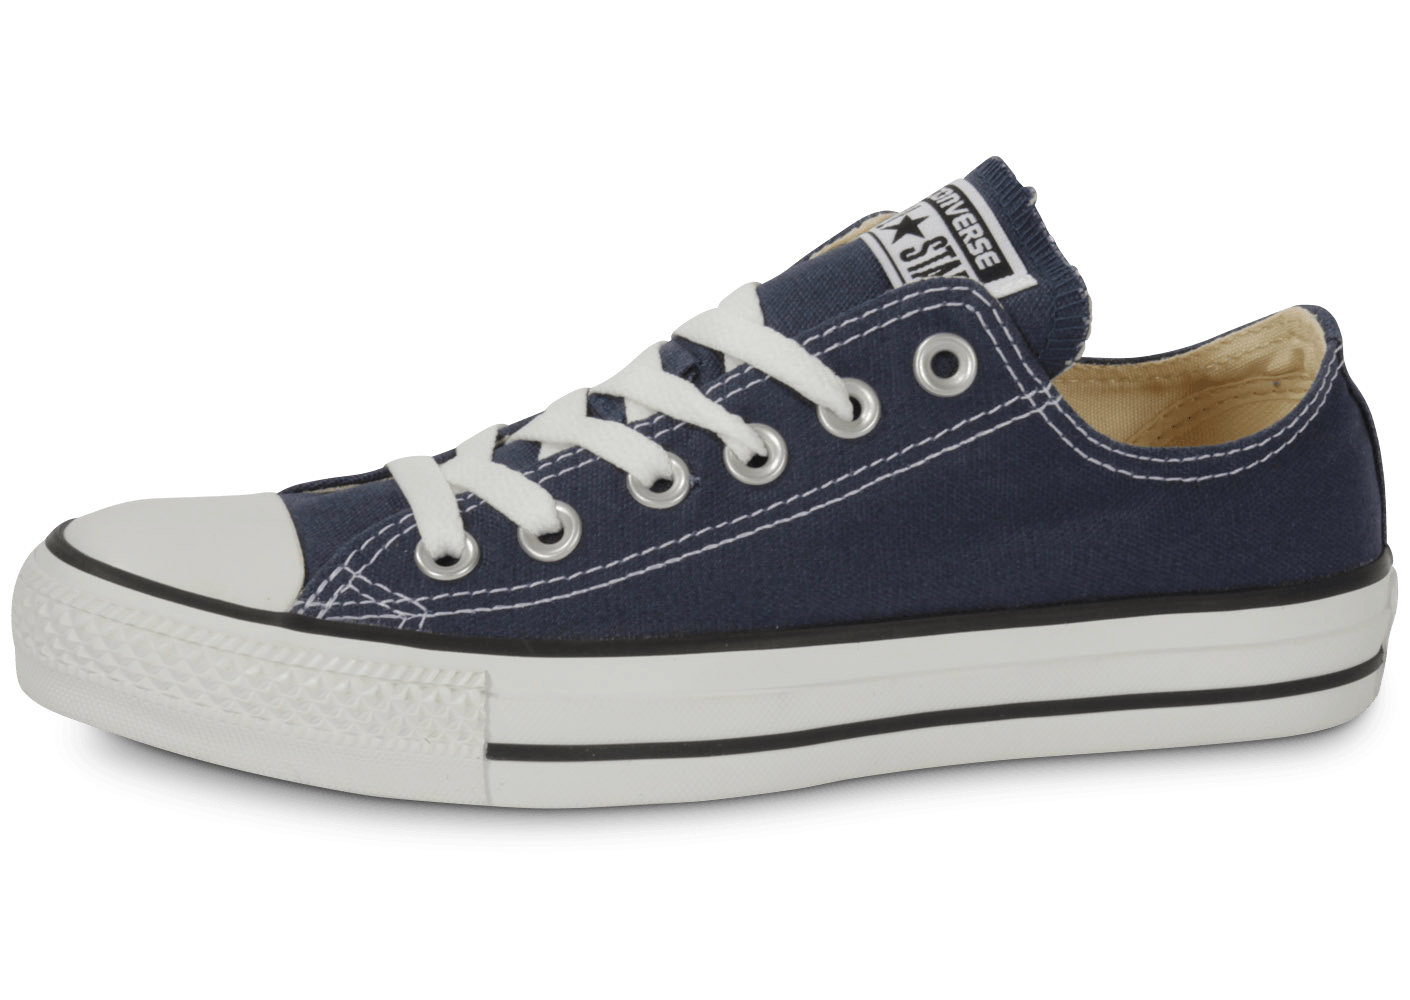 converse chuck taylor all star low bleu marine chaussures femme chausport. Black Bedroom Furniture Sets. Home Design Ideas